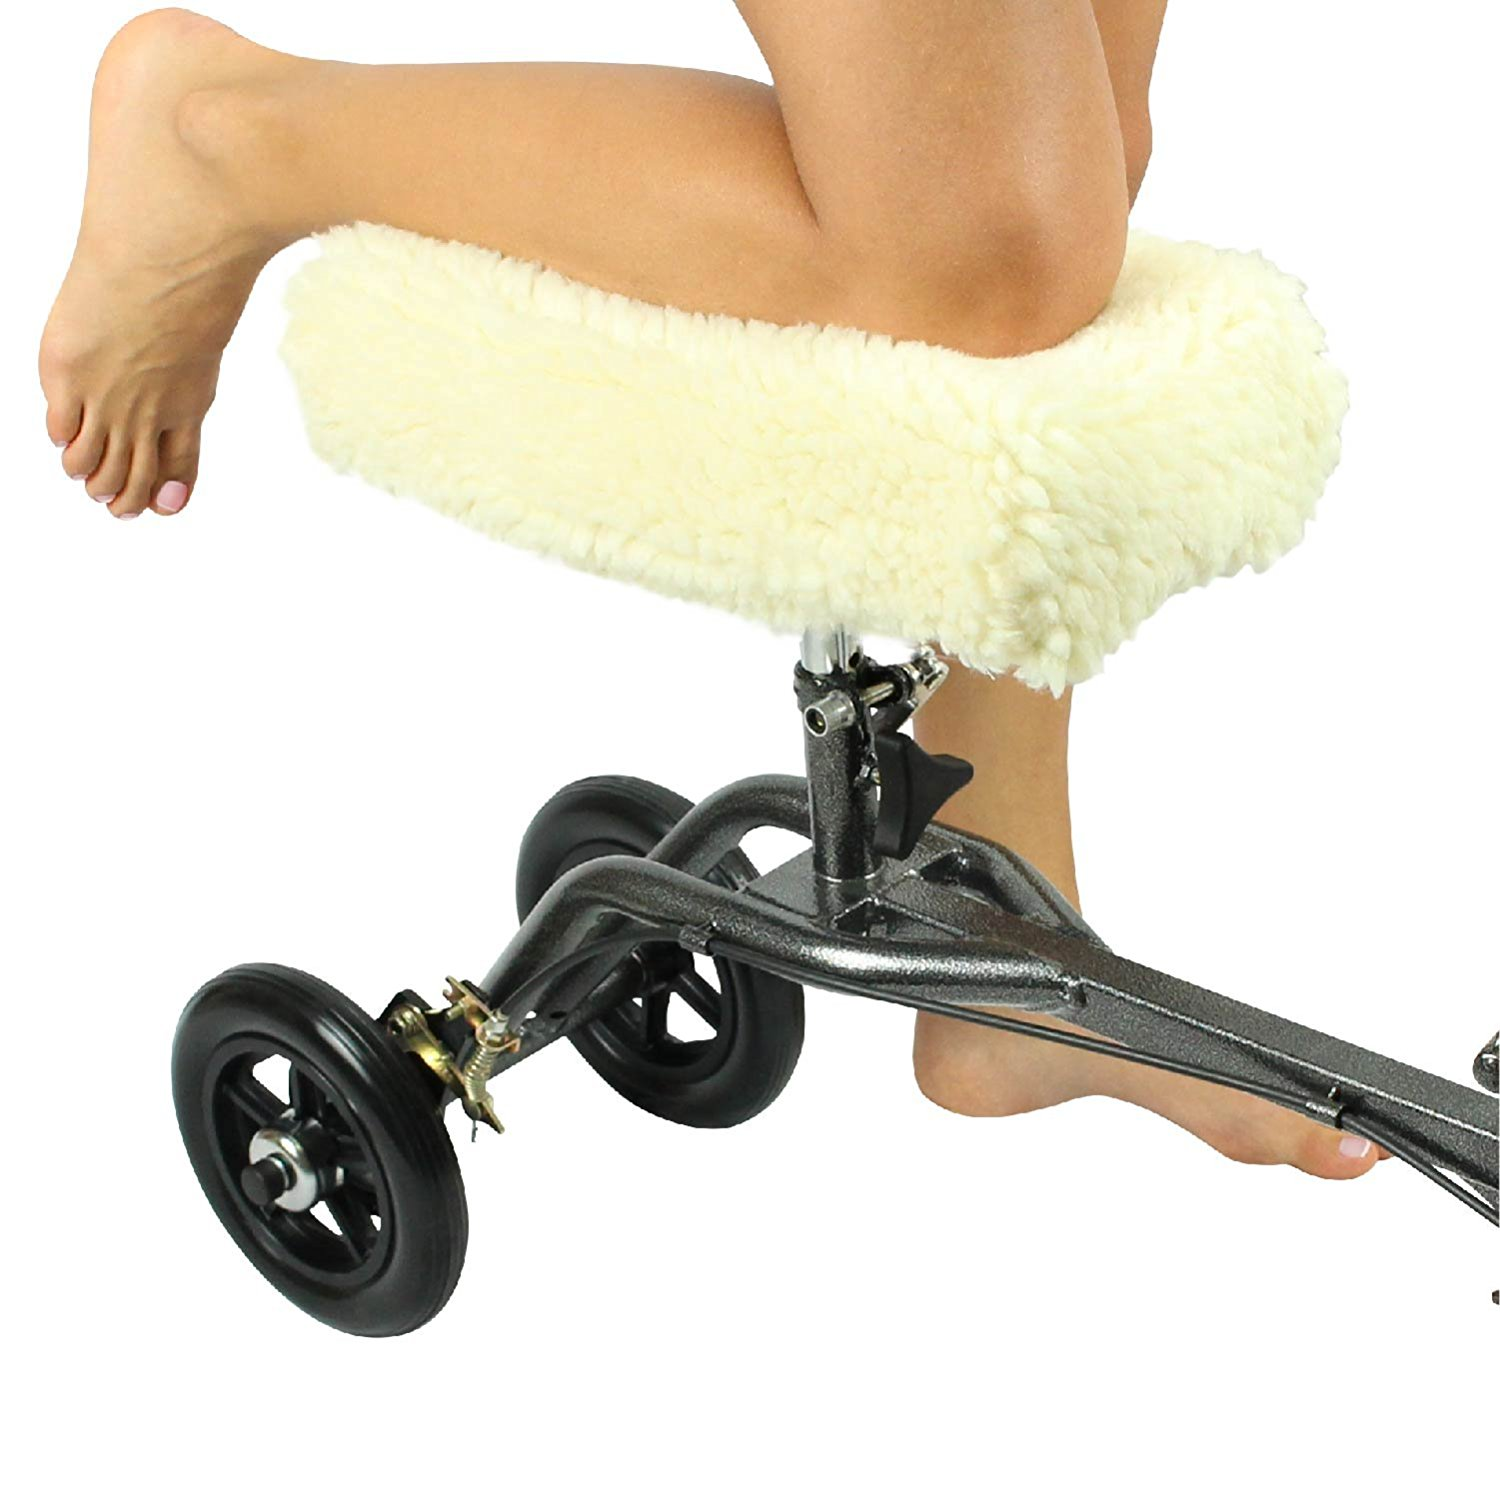 What to Look For in a Knee Scooter